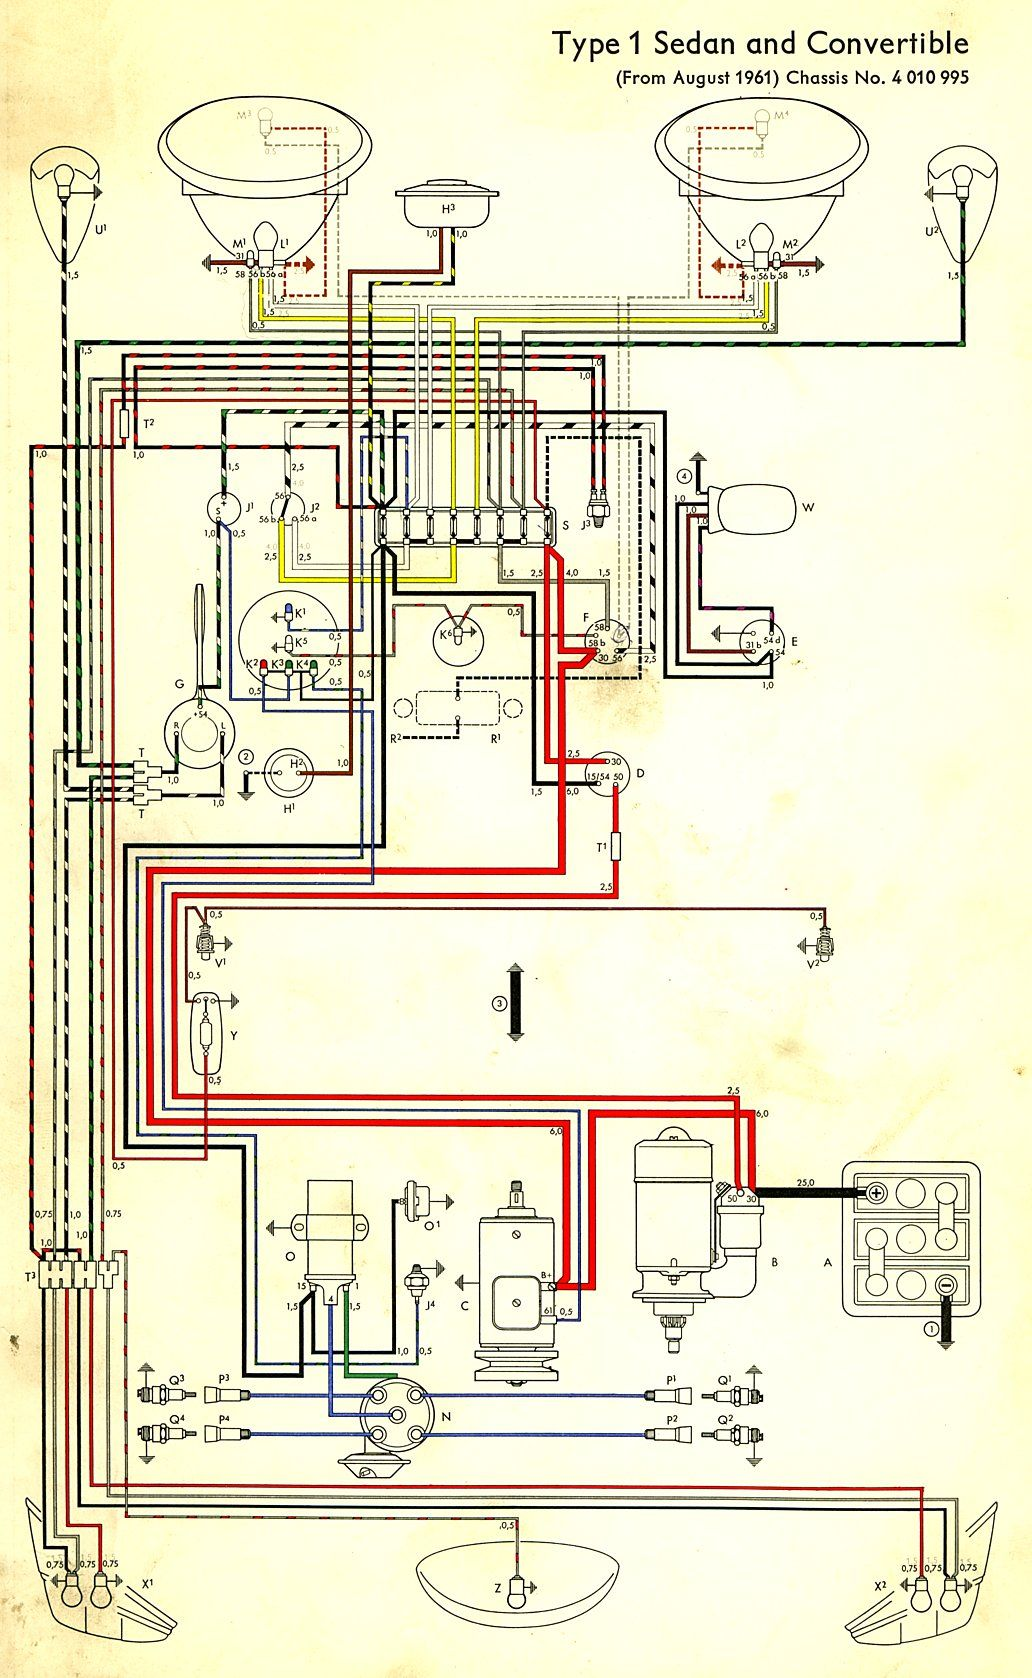 1961 Vw Wiring Diagram - Wiring Diagram •